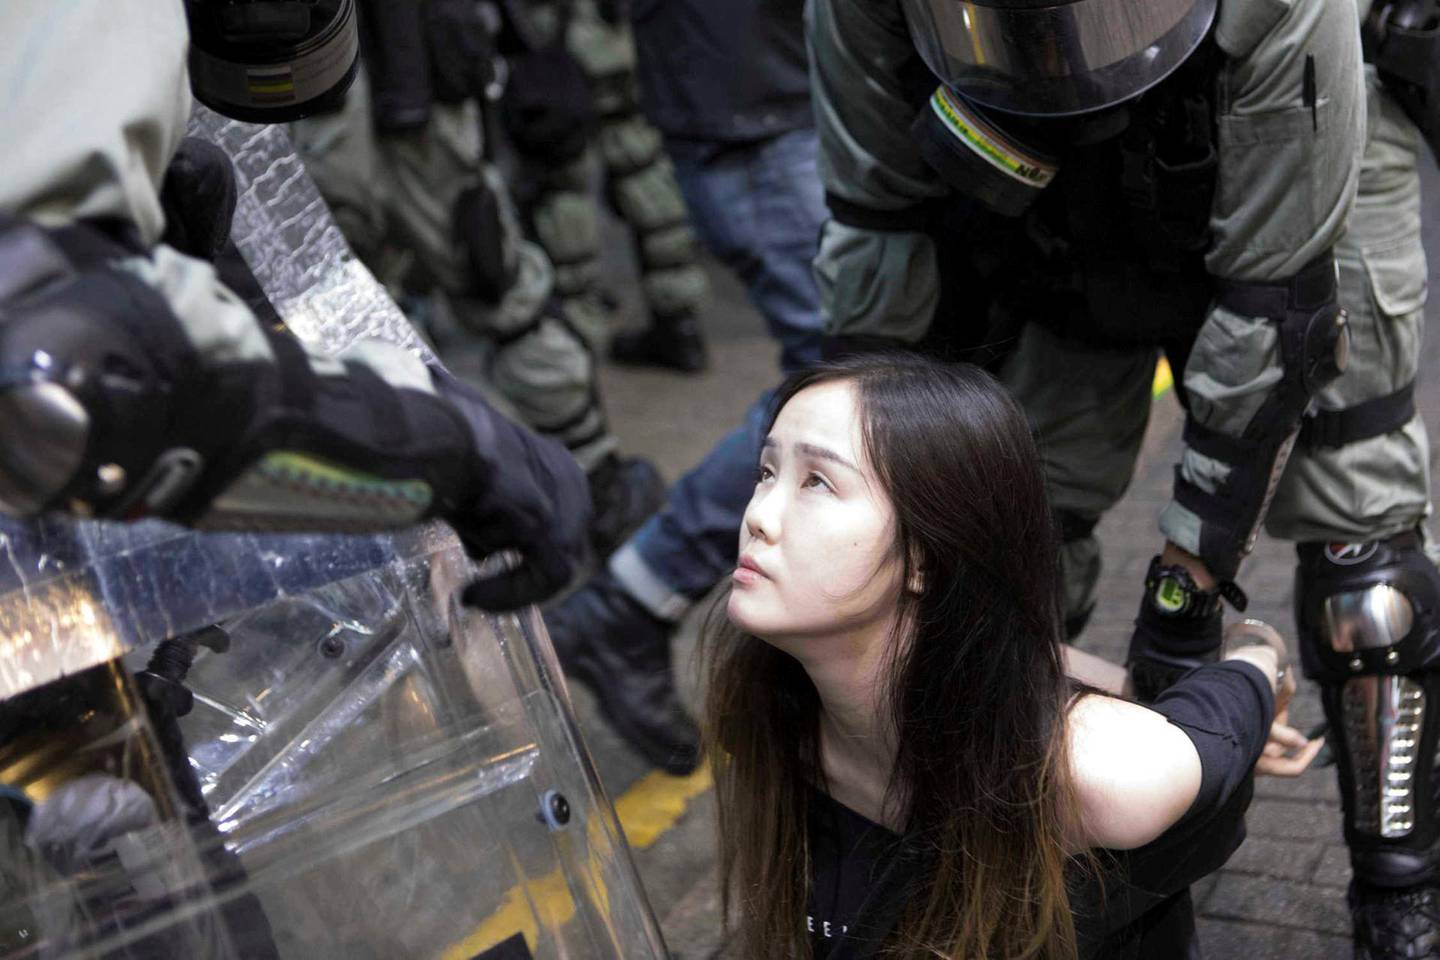 A young female demonstrator is arrested by police during clashes in the Causeway Bay area of Hong Kong. Rick Findler for The National